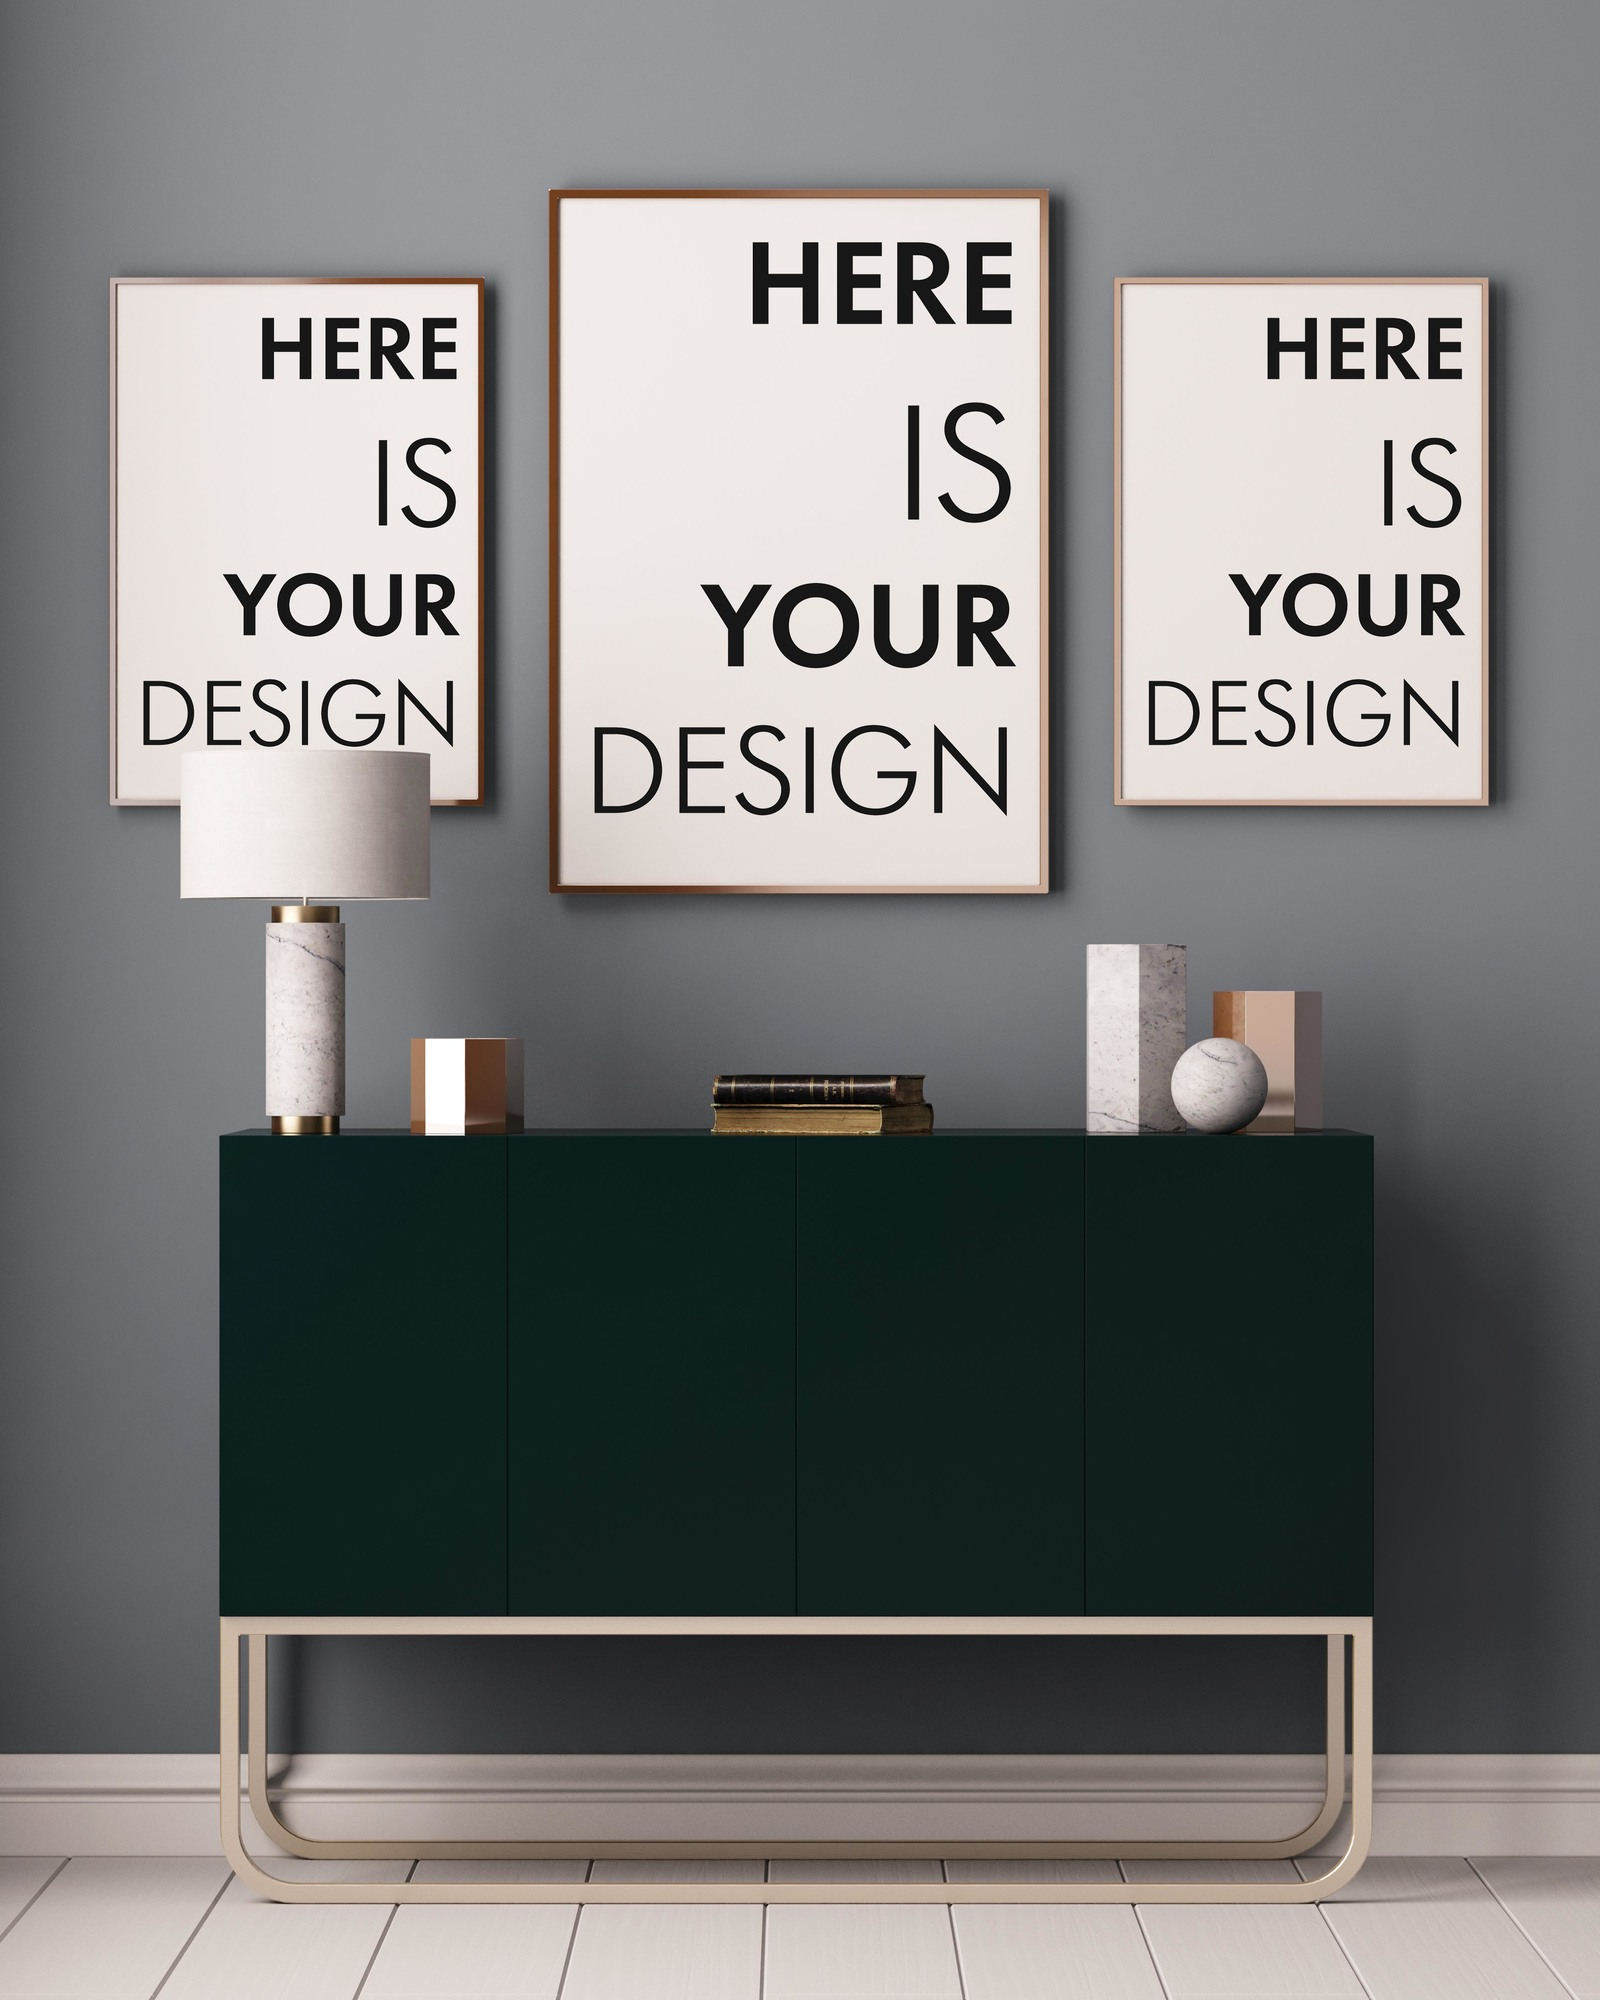 15 mockup of posters in the interior